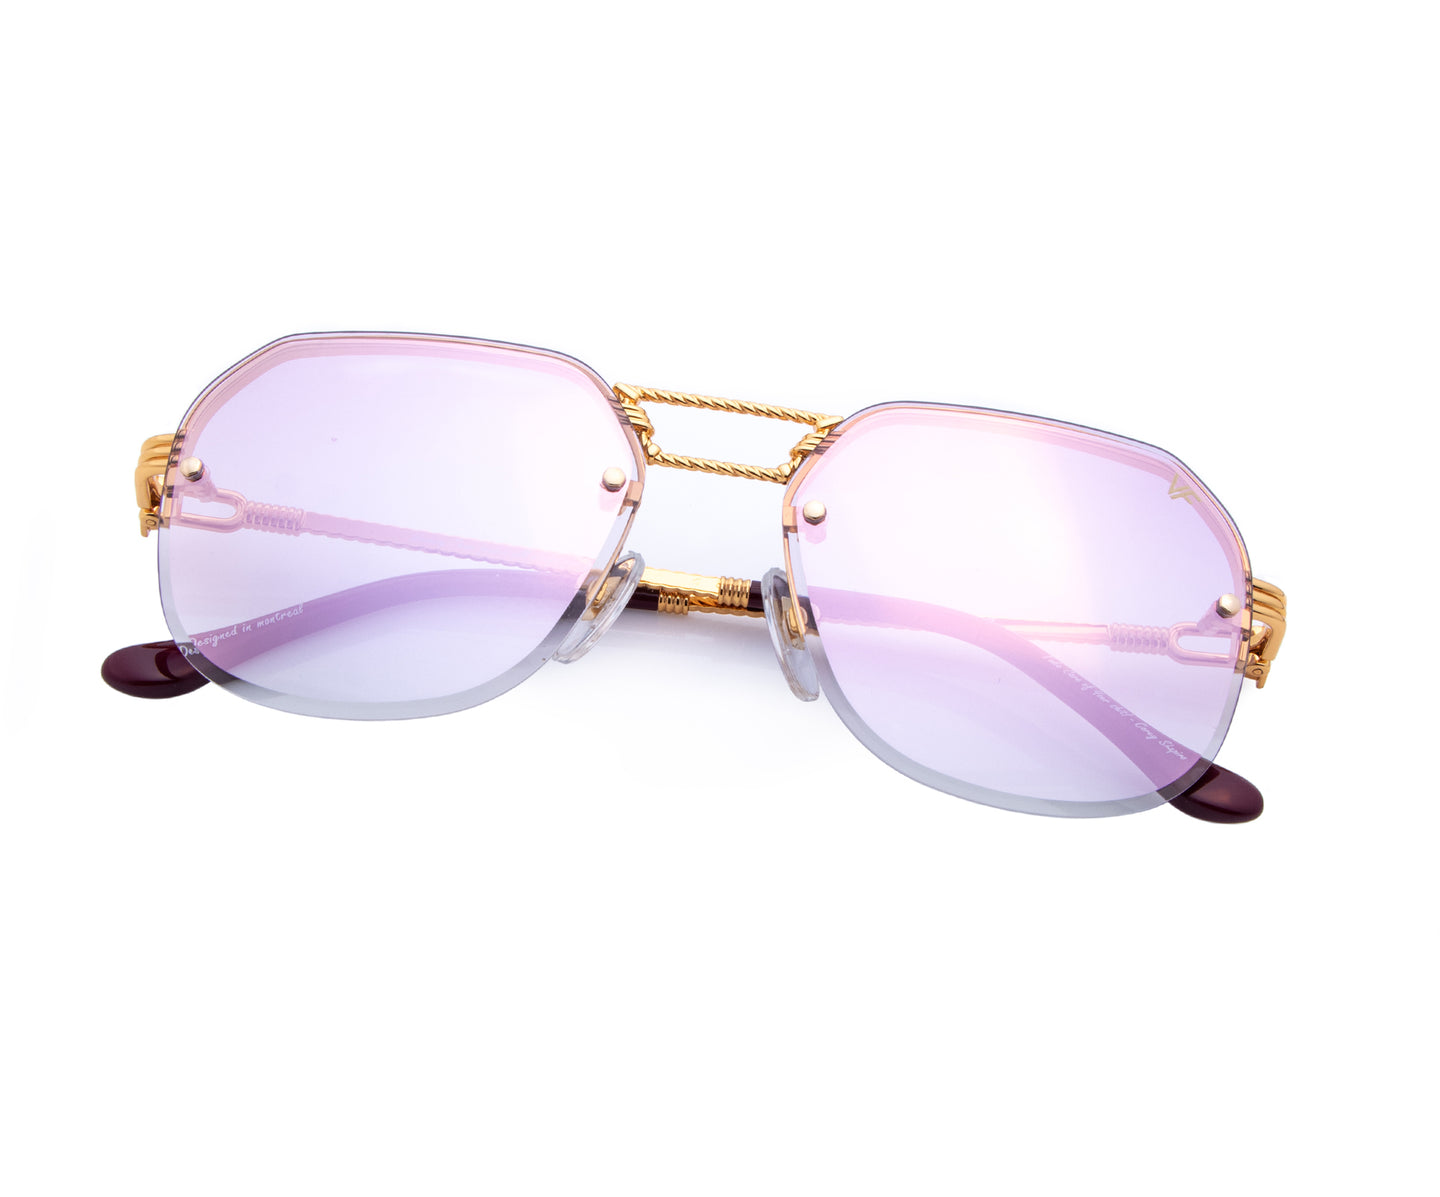 CEO Bevel Drill Mount 18KT Gold (Pastel Mauve), VF Drill Mount , glasses frames, eyeglasses online, eyeglass frames, mens glasses, womens glasses, buy glasses online, designer eyeglasses, vintage sunglasses, retro sunglasses, vintage glasses, sunglass, eyeglass, glasses, lens, vintage frames company, vf